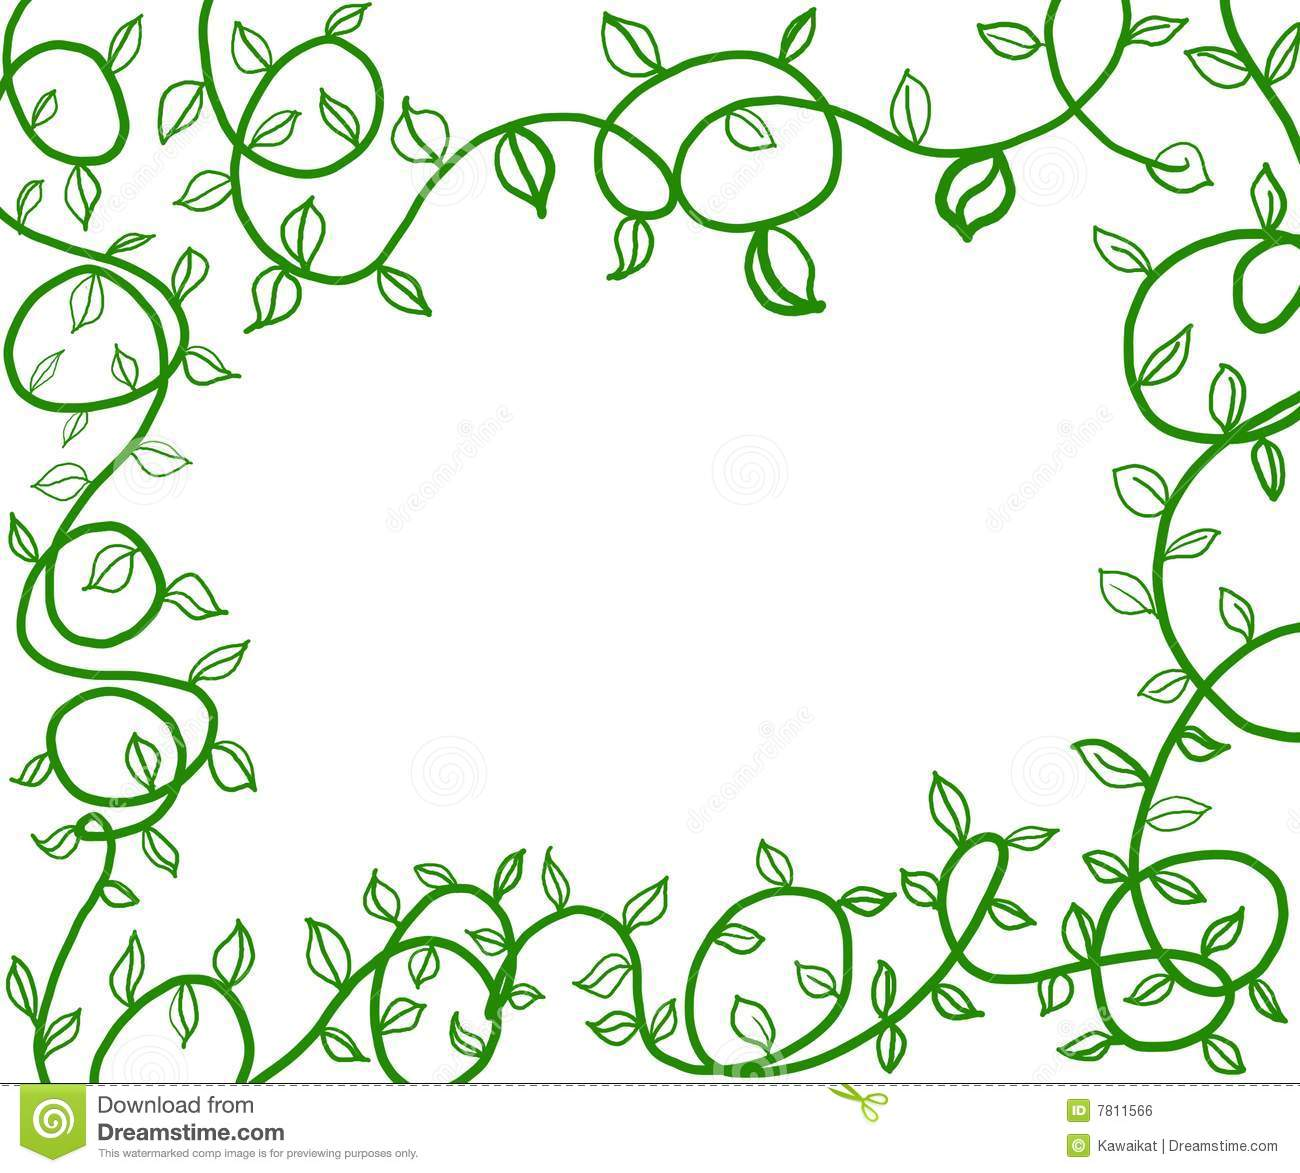 Green vines stock illustration. Illustration of ...